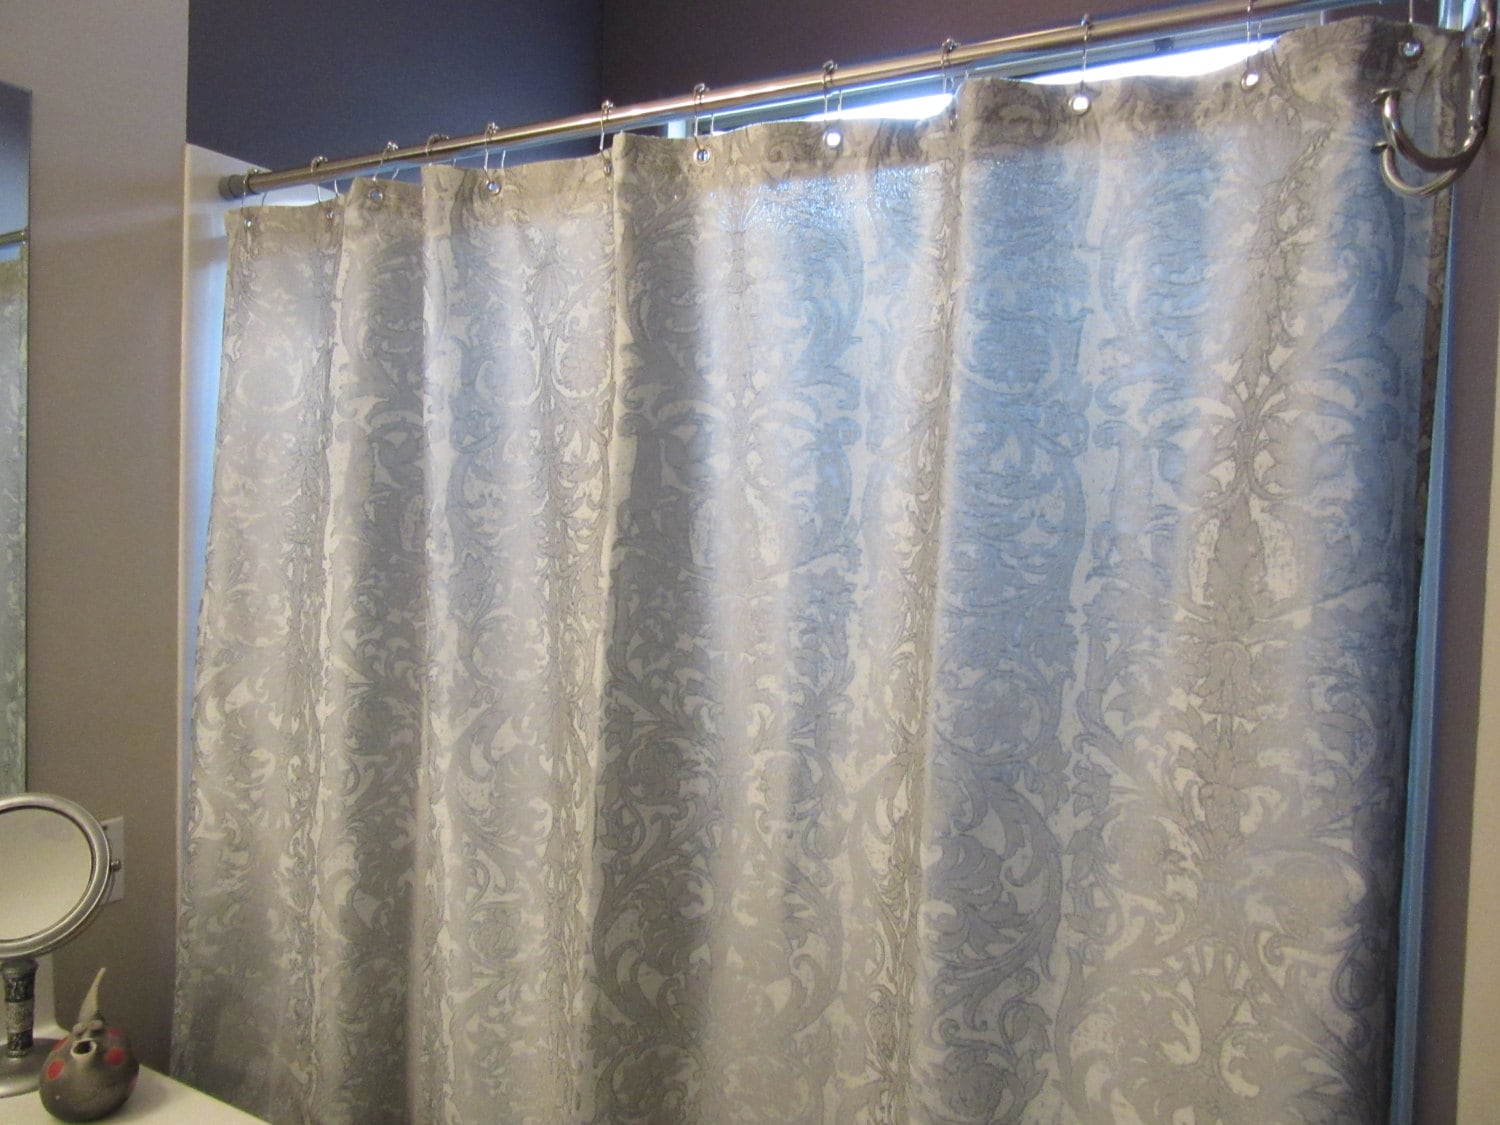 Silver and White Damask Shower Curtain with Nickel Plated